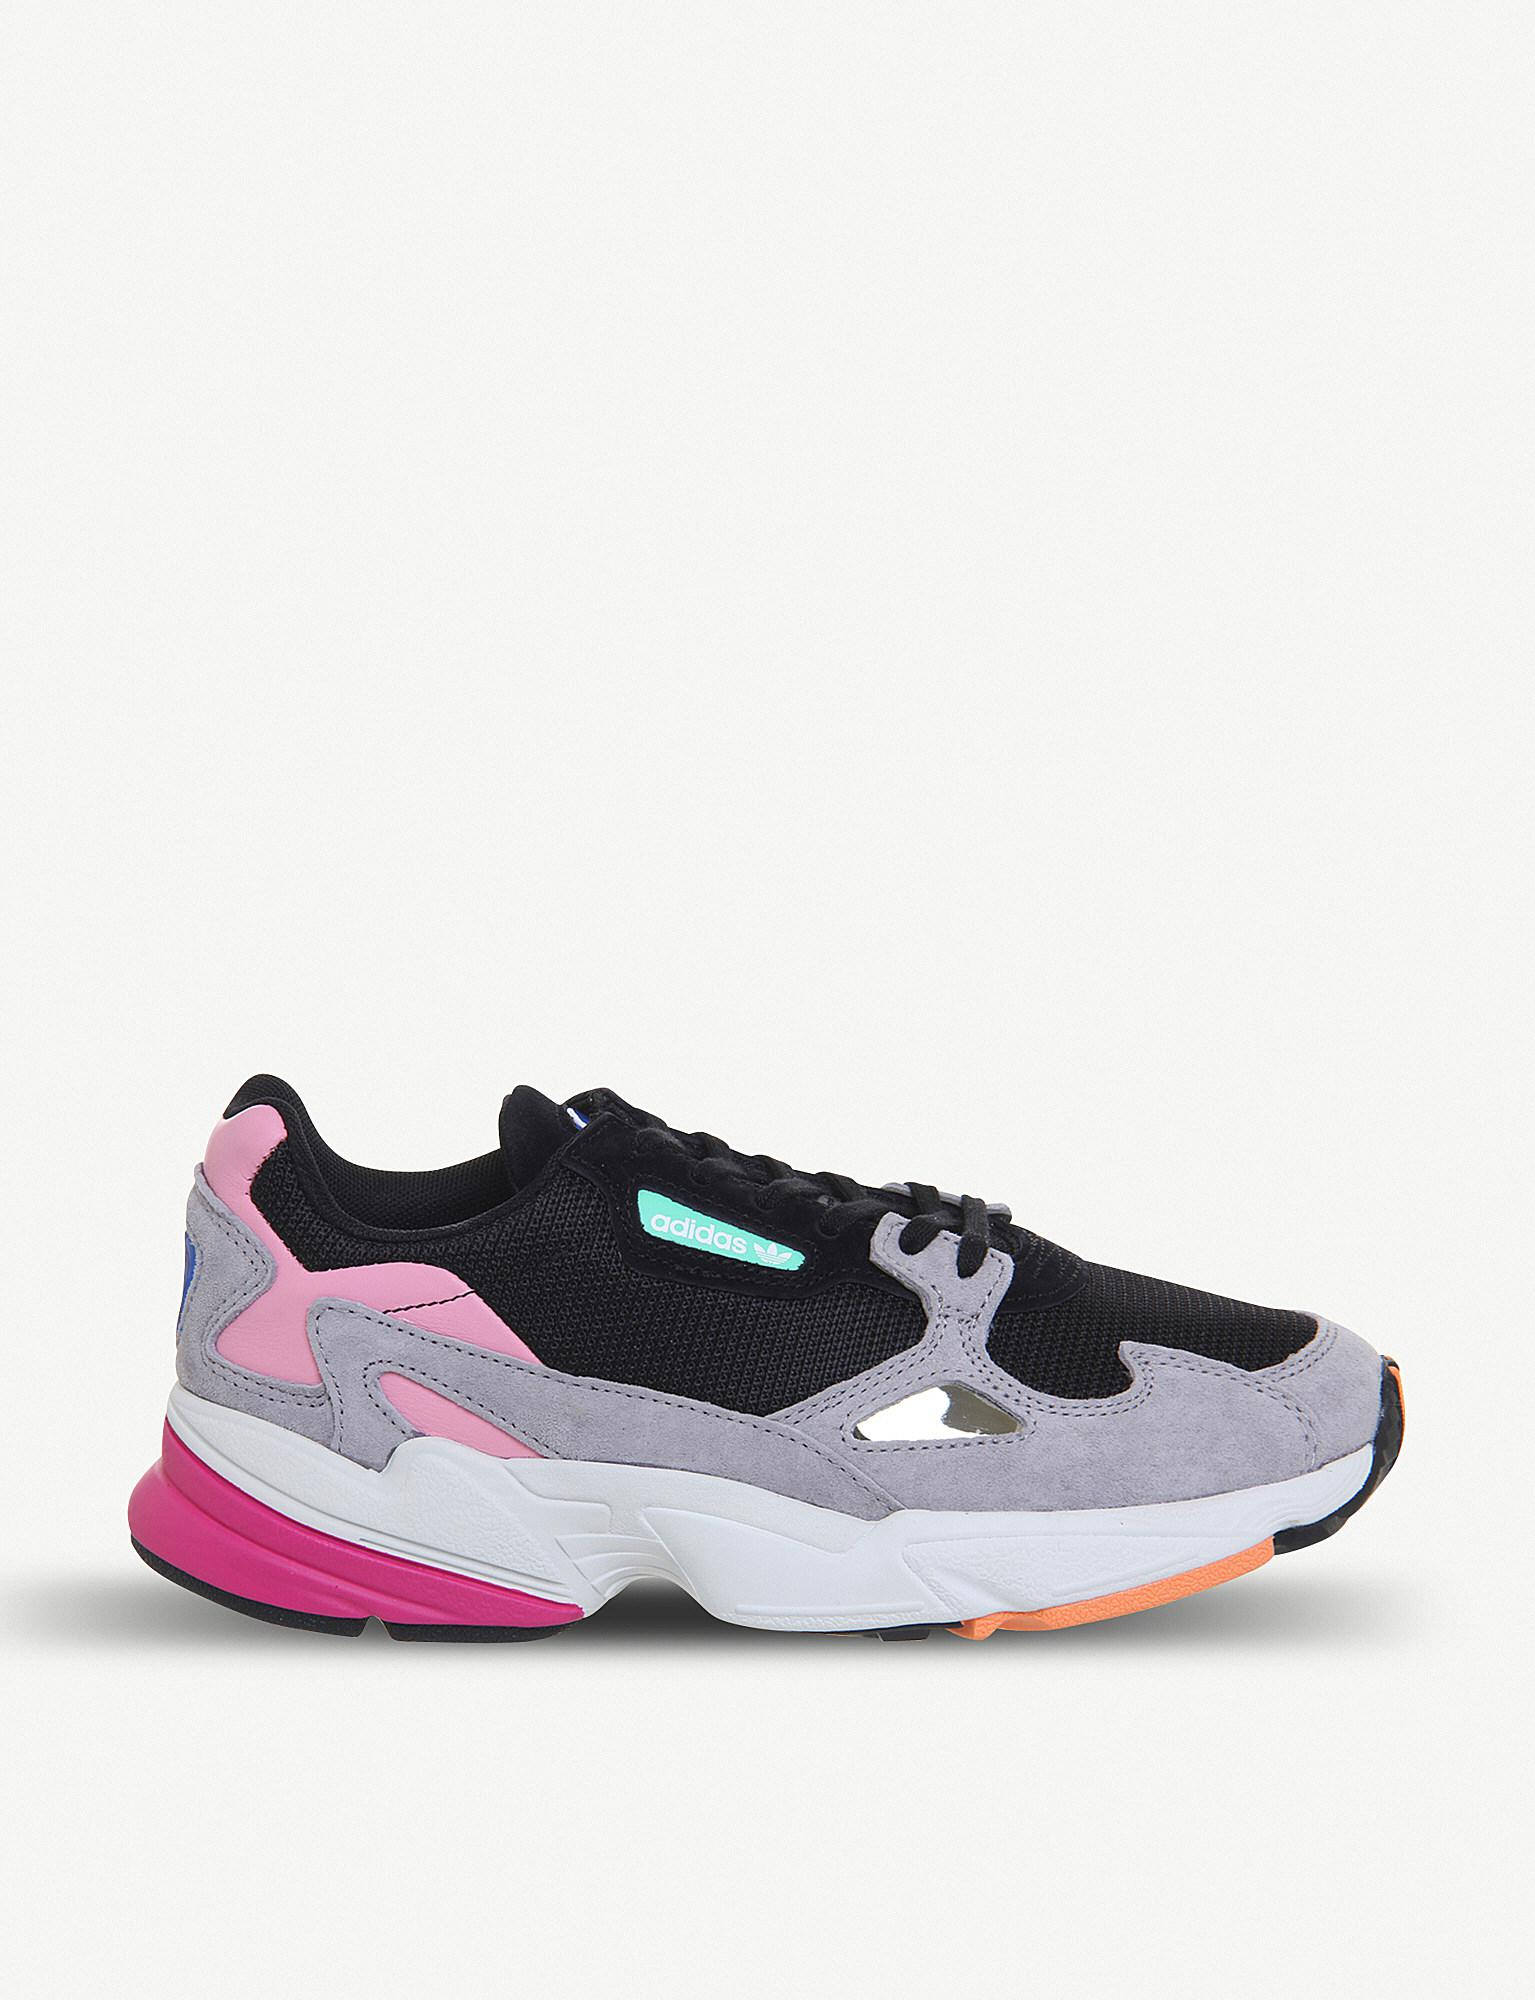 adidas Falcon Suede And Mesh Trainers